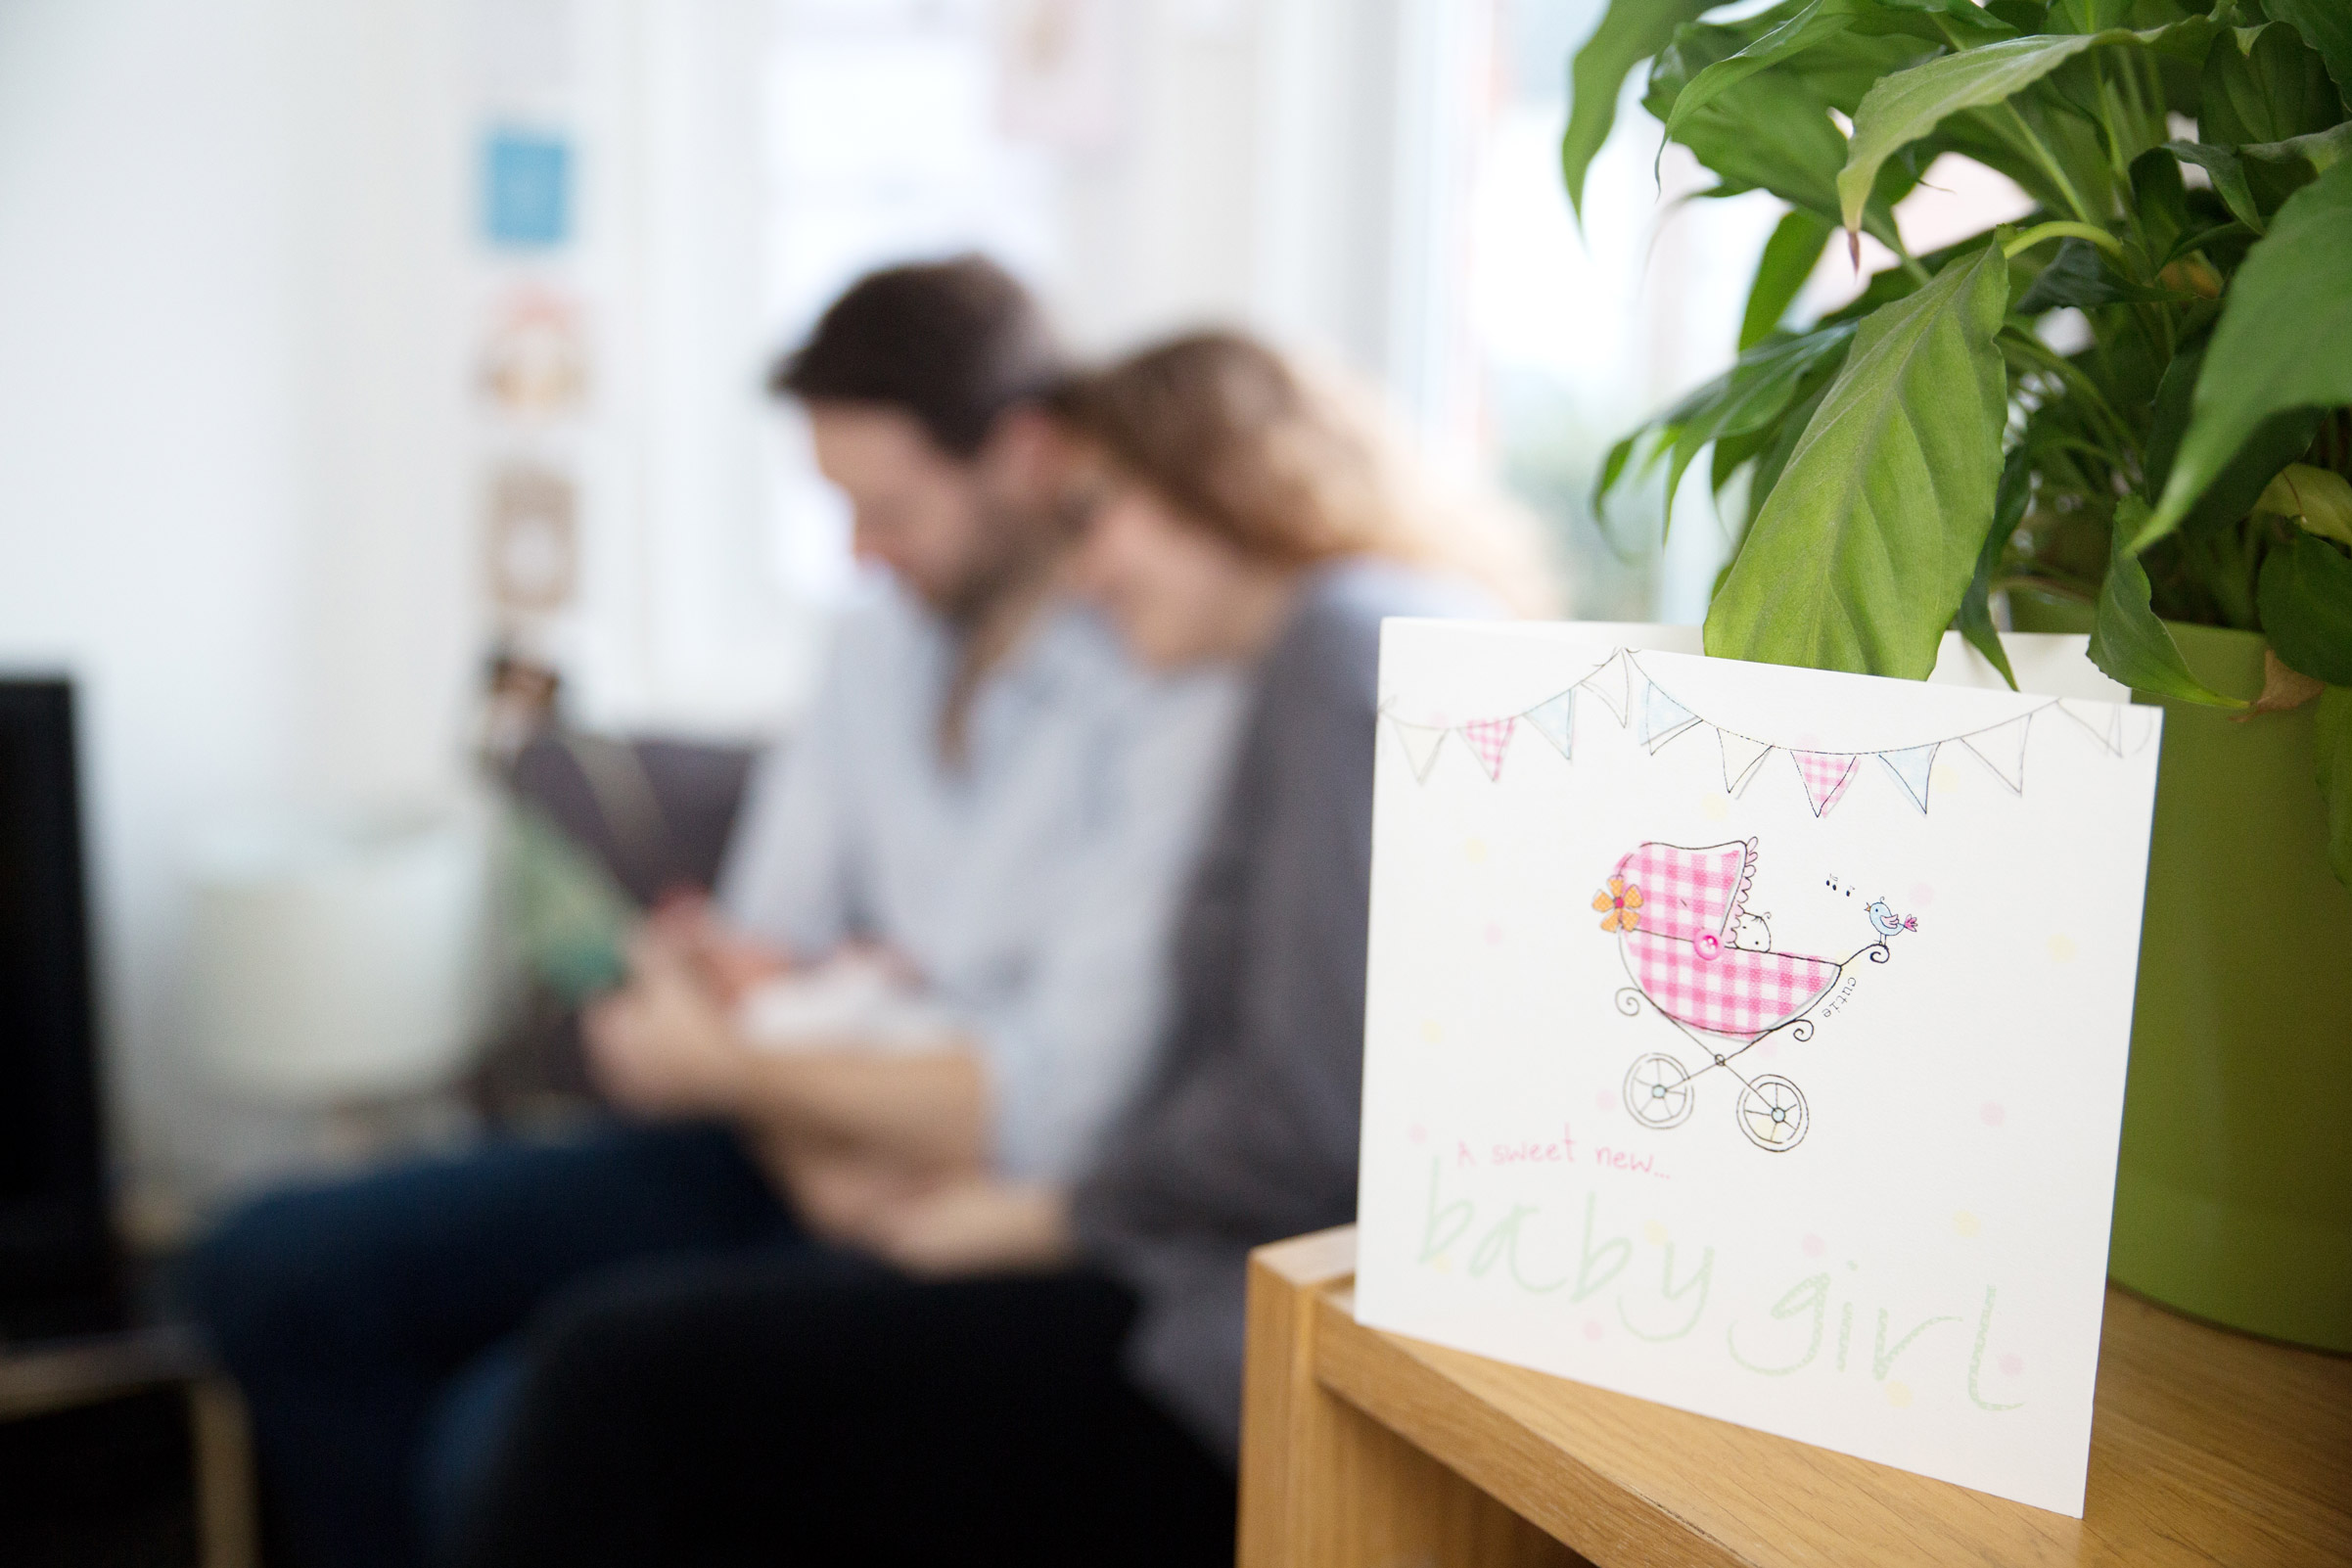 a card reading 'a sweet new baby girl with parents and baby out of focus in the background